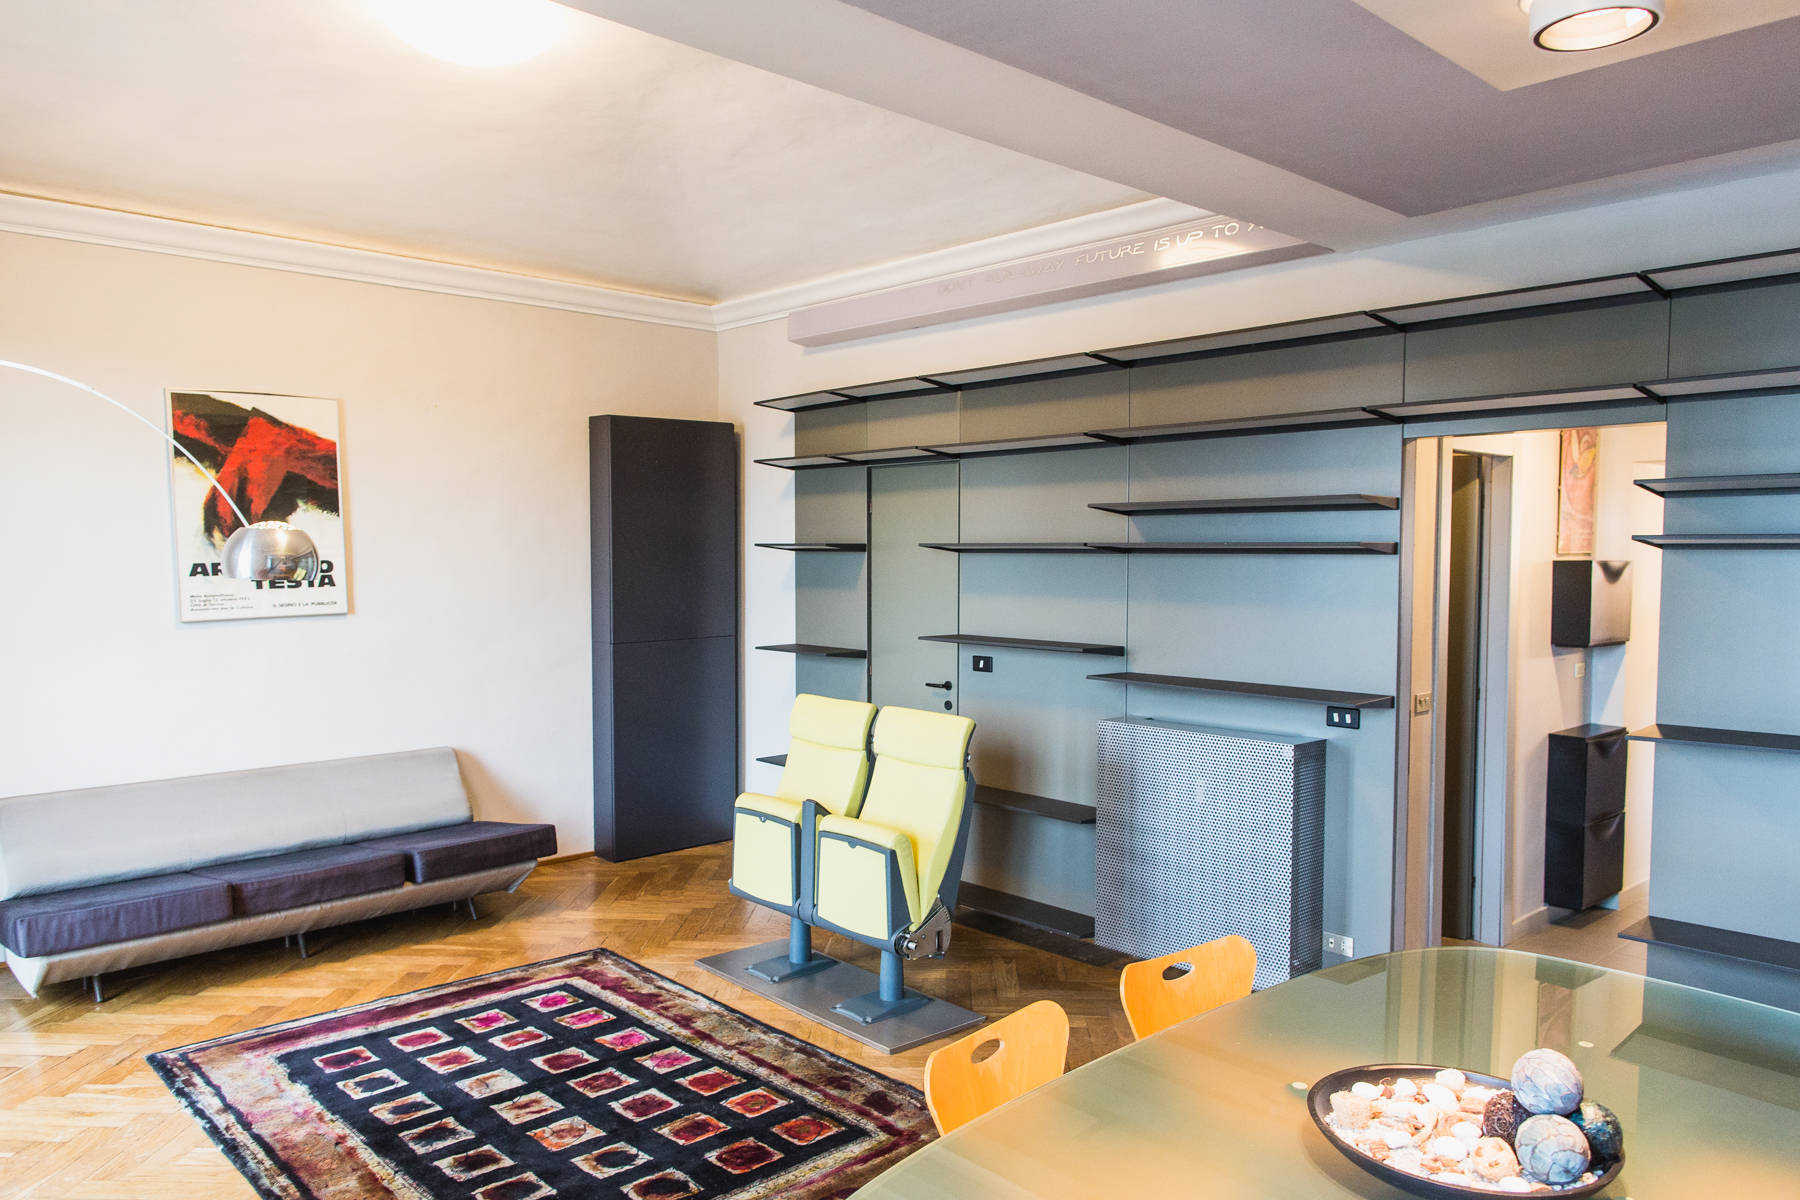 Additional photo for property listing at Essential and modern style apartment Corso Guglielmo Marconi Torino, Turin 10125 Italie